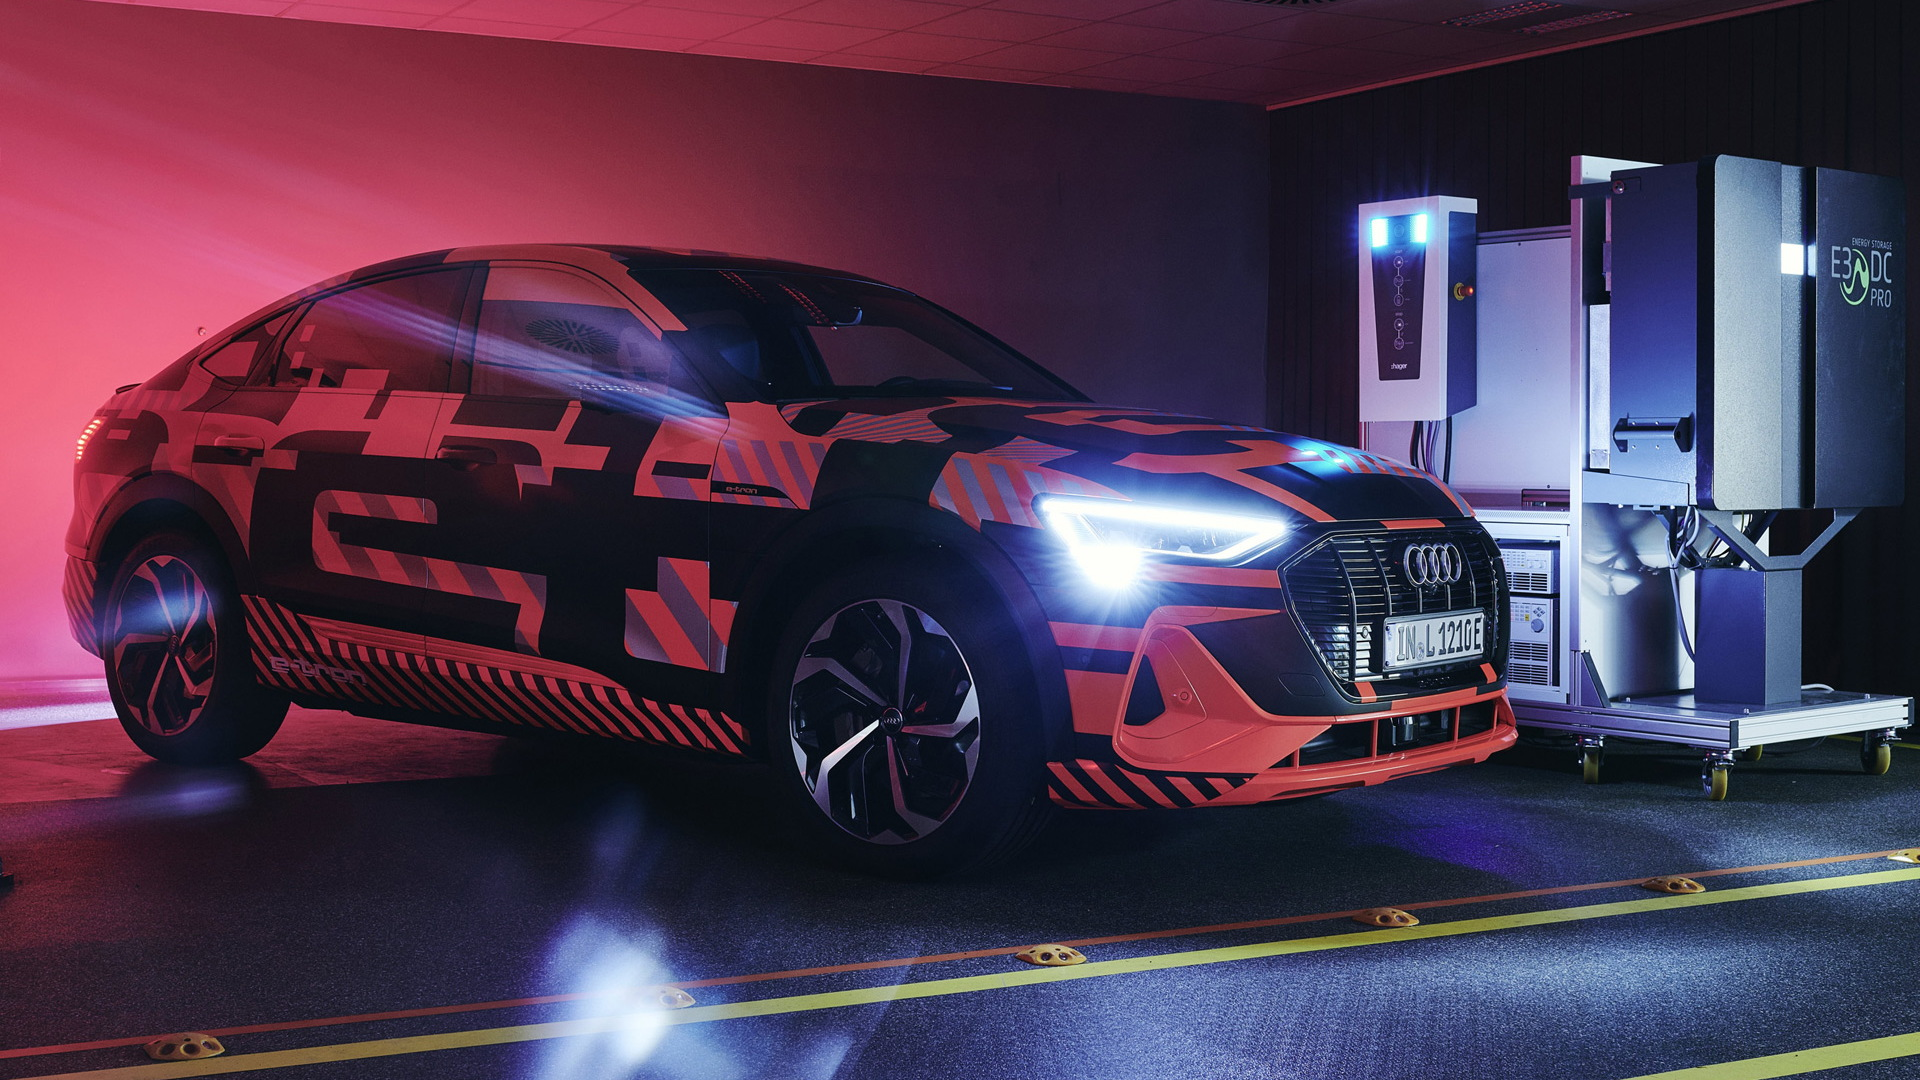 Audi E-Tron Sportback prototype with vehicle-to-grid charging capability